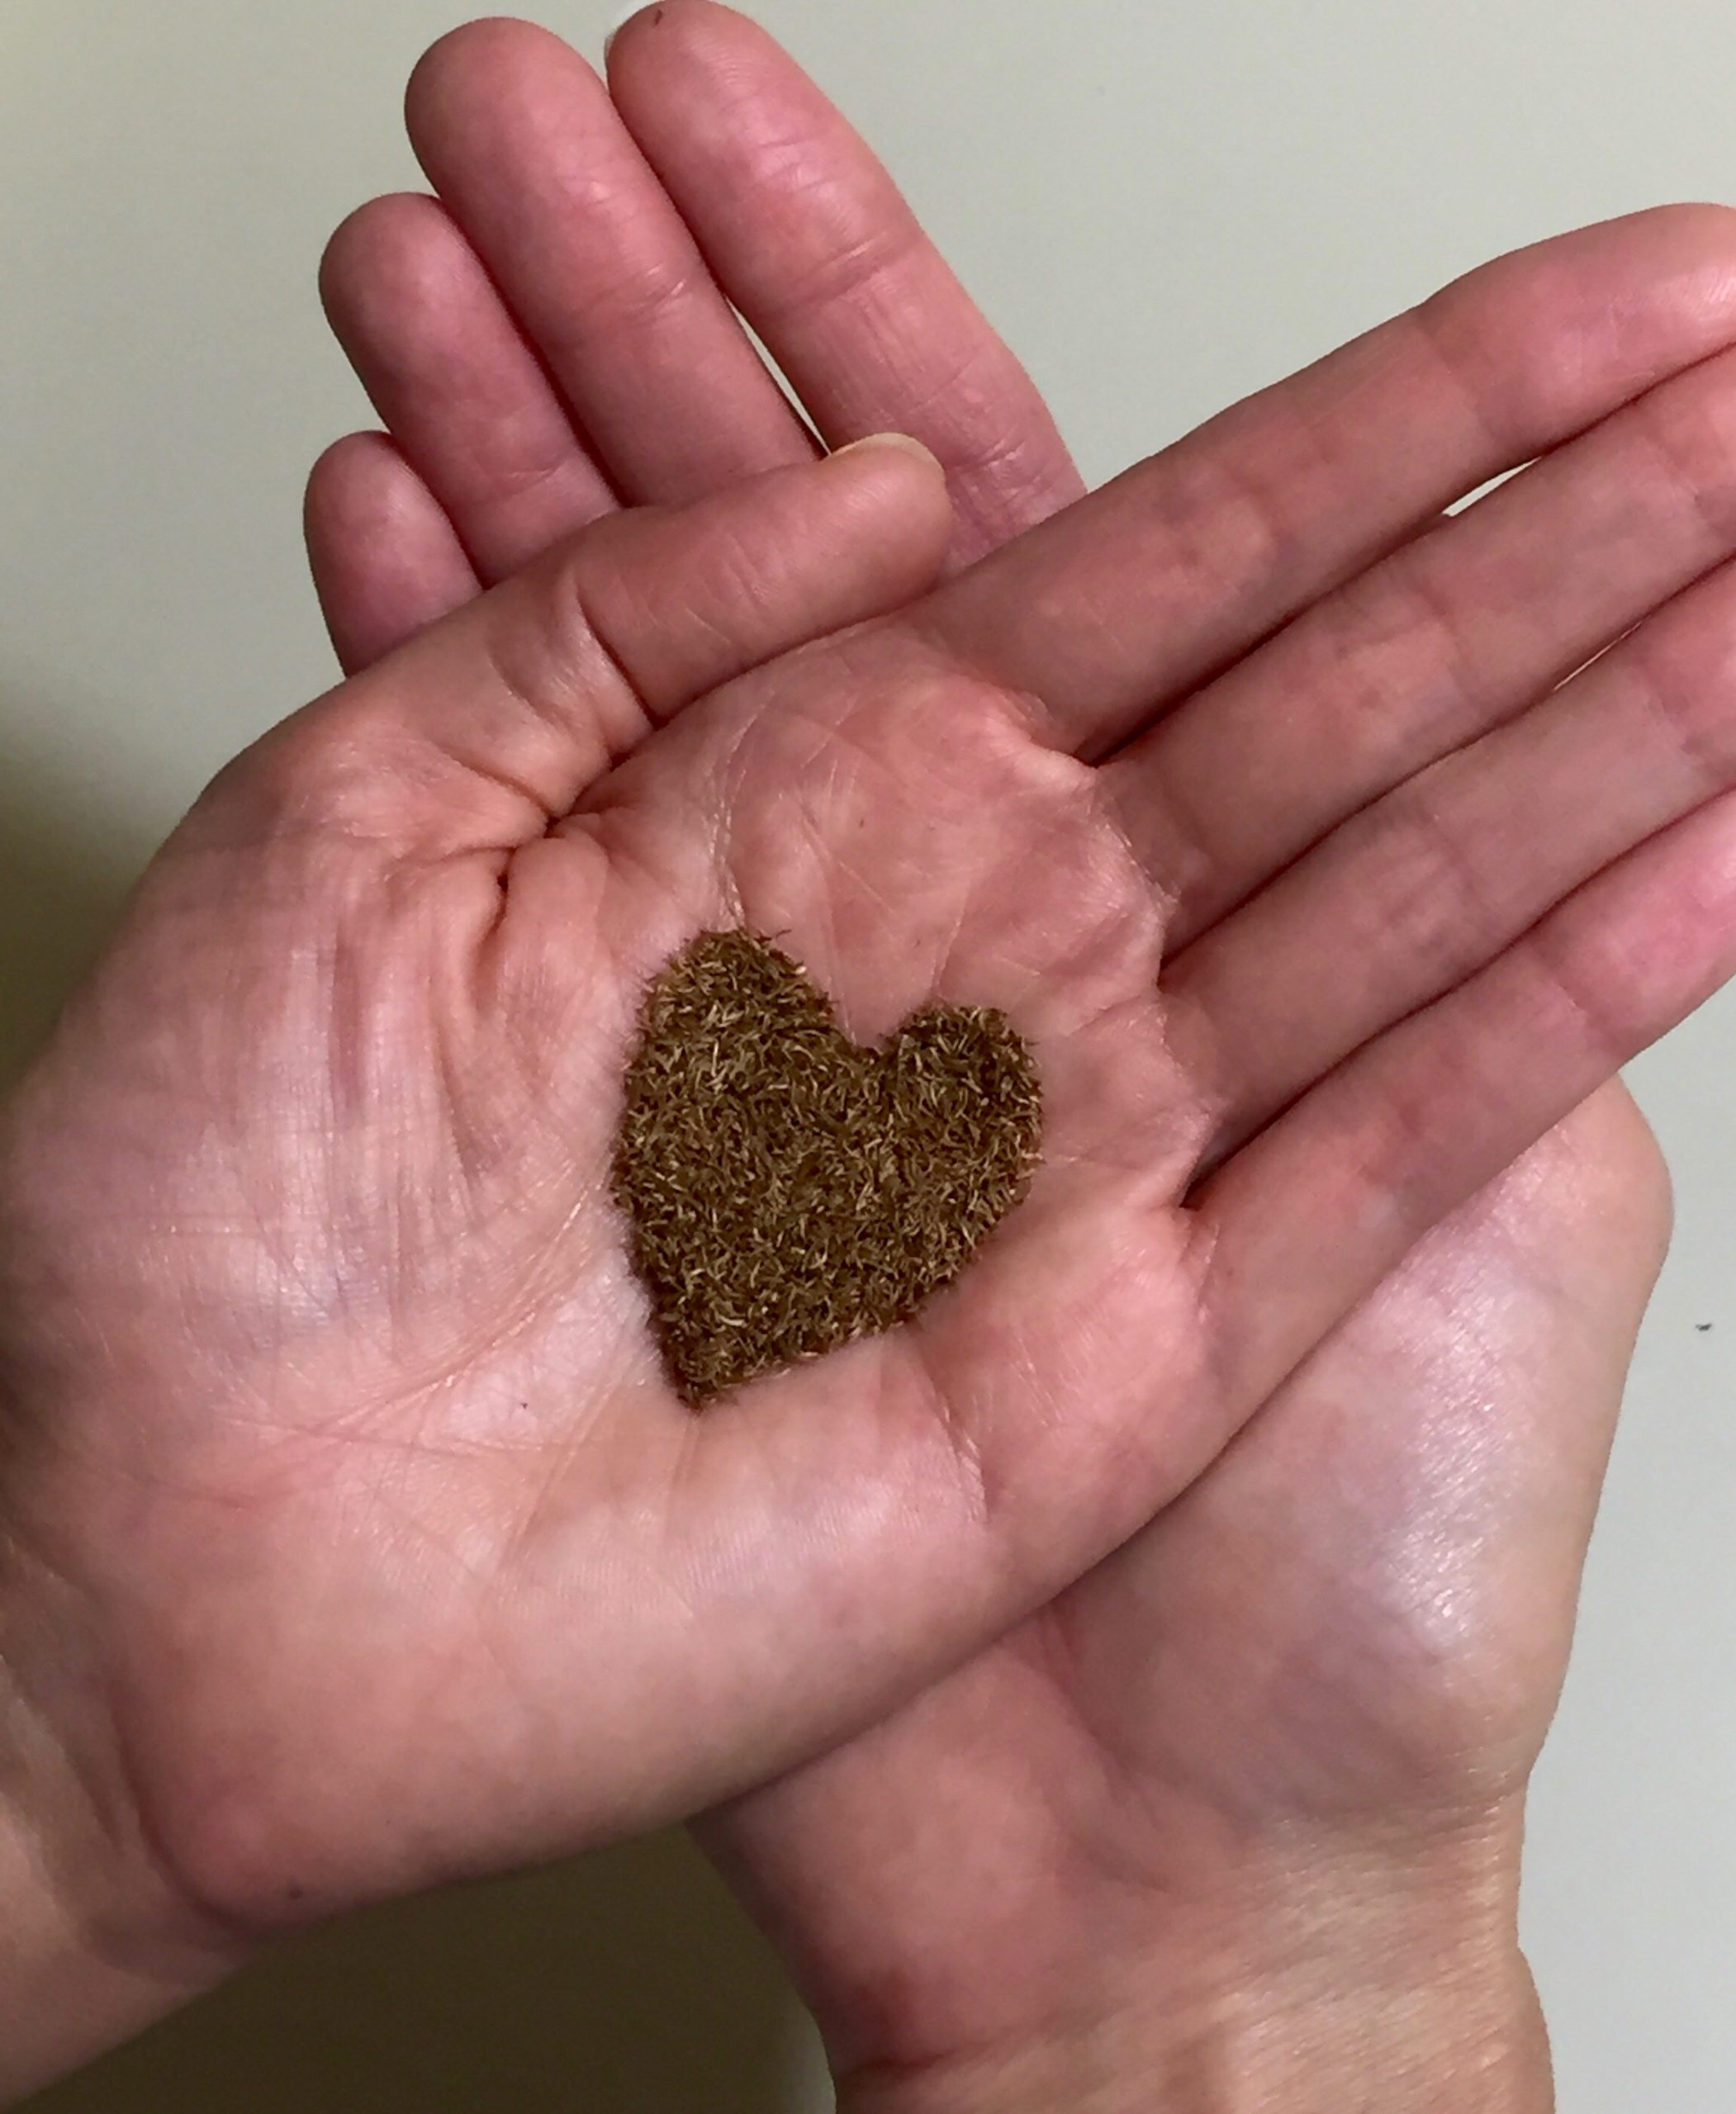 Over 10,000 'Ōhi'a seeds in the palm of the hand.